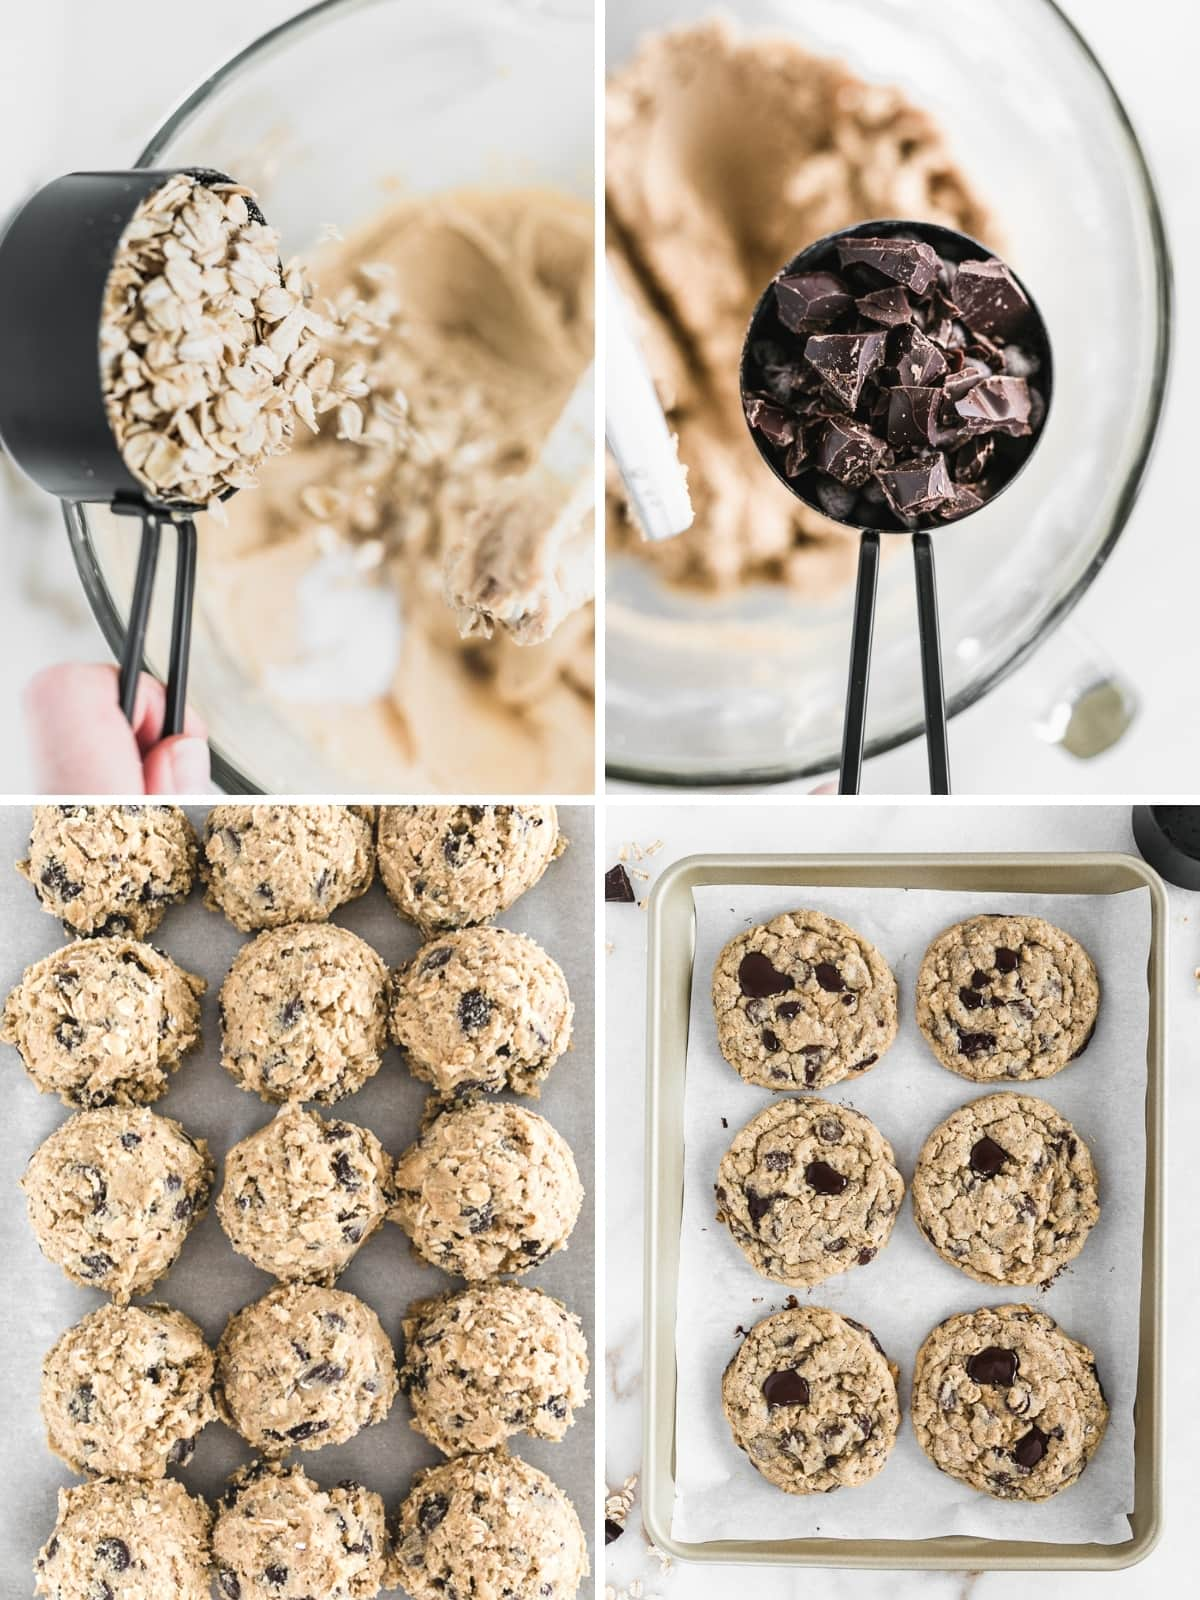 four image collage showing steps for baking oatmeal chocolate chip cookies.